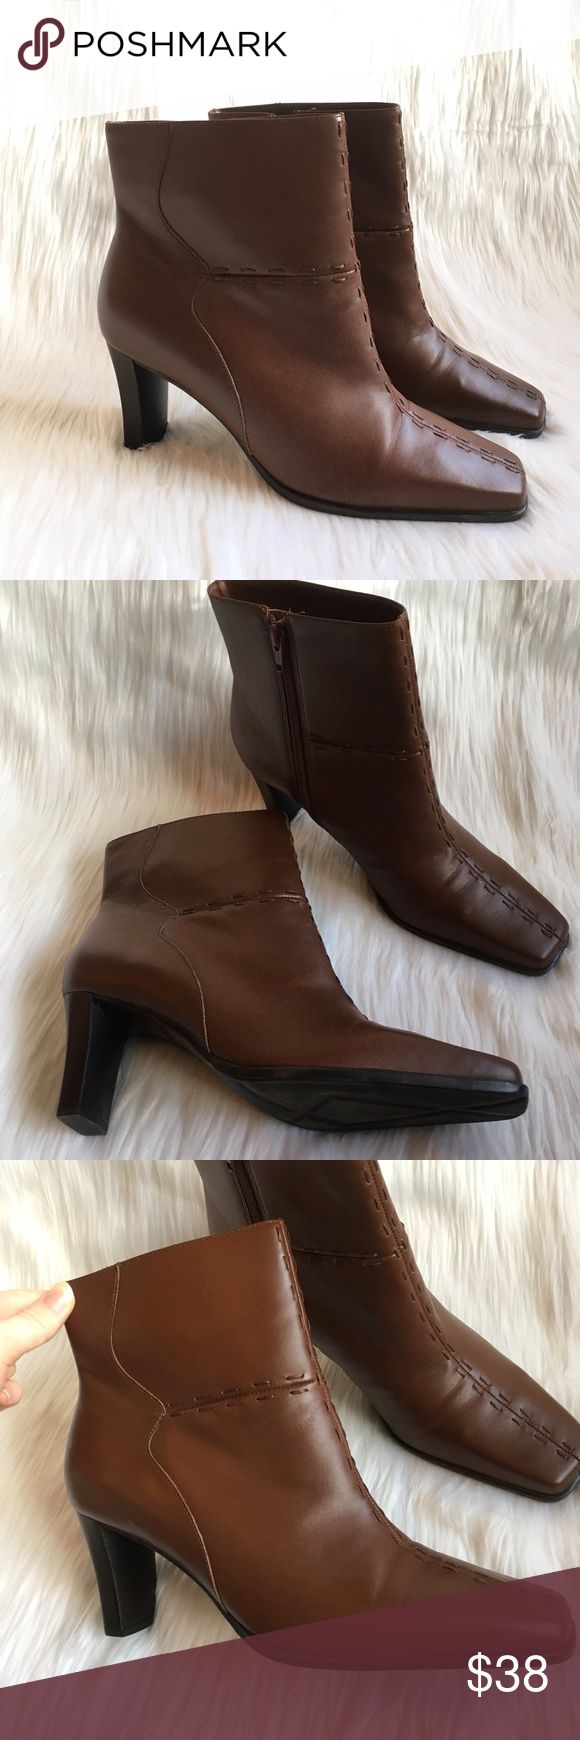 """NEW Markon Whitney Brown Leather Ankle 3"""" Booties NEW brown ankle boots. chocolate brown shade. fabulous stitching. flattering square toe. style name is the """"whitney"""". 3"""" slim block heel. these are brand new. from the brand markon. high quality leather upper. a fabulous addition to your boot collection! made in brazil. women's size 9.5. 10% off bundles of 2 items and 15% off bundles of 3+ items. Markon Shoes Heeled Boots"""